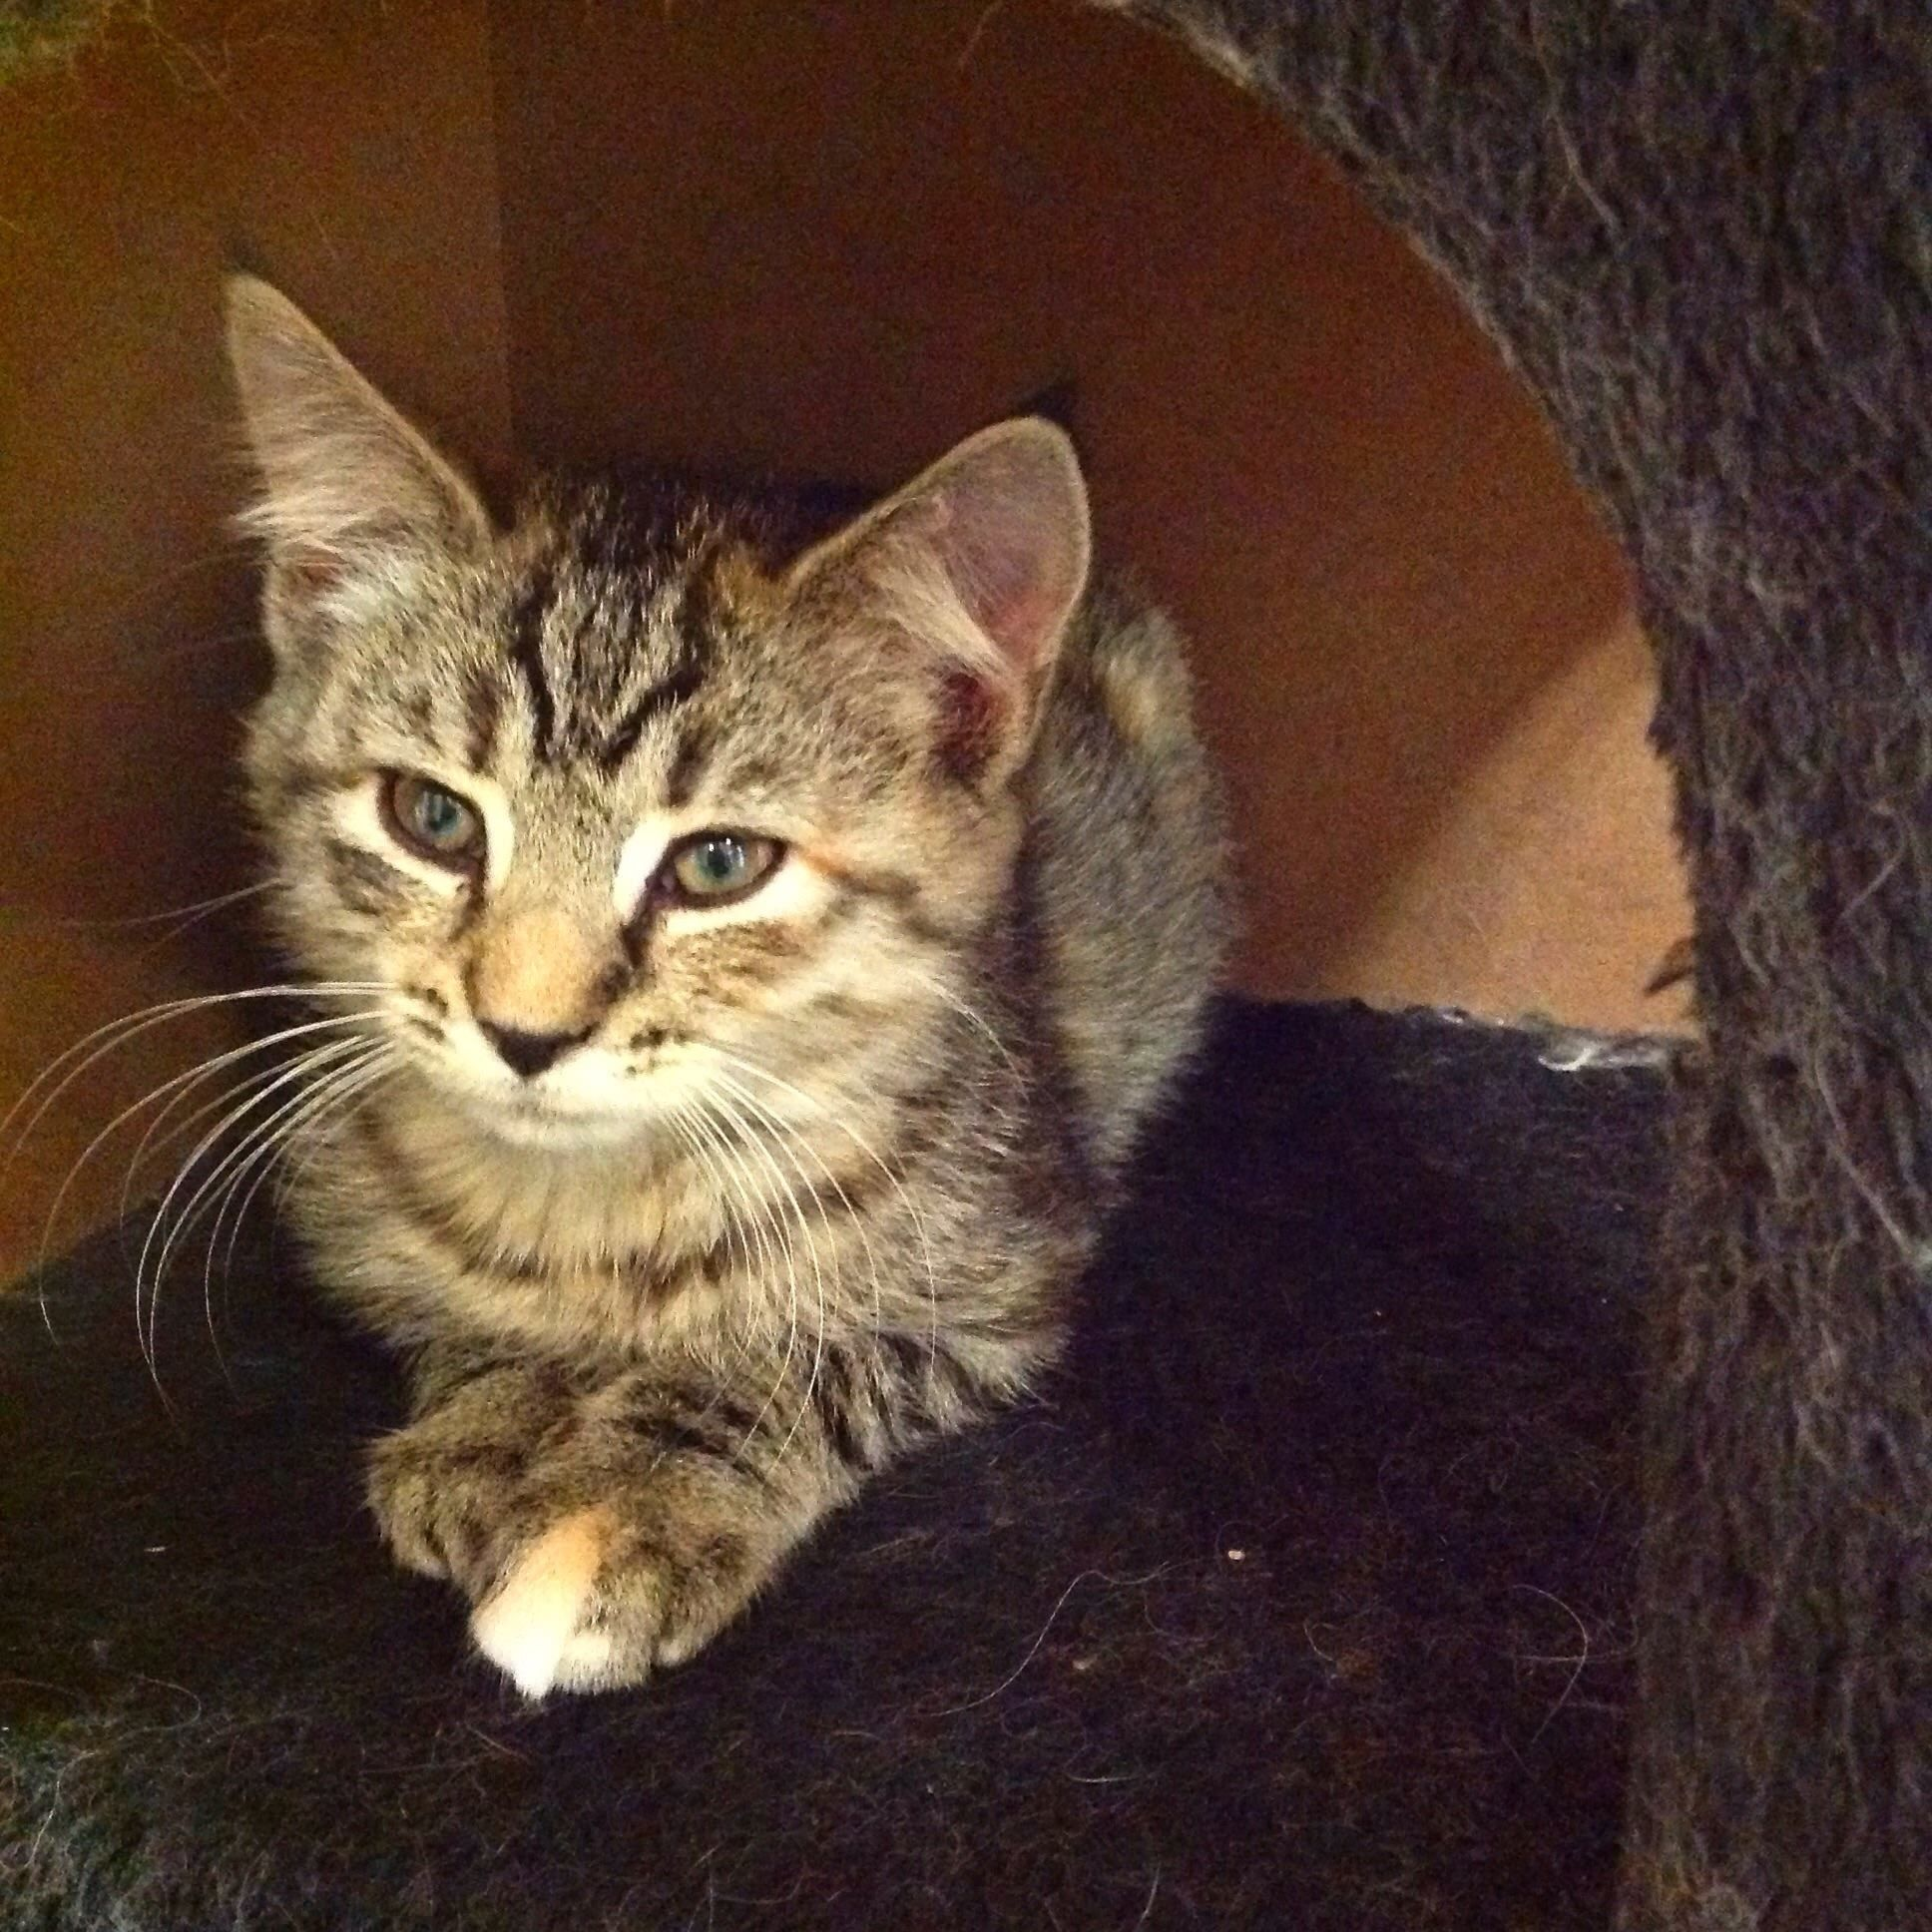 Rescue Cat Tri Colored Female Kitten Approx Date Of Birth 7 29 14 Vaccinated Dewormed Flea Tick Treated Spay Included In The Cat Rescue Kittens Pets